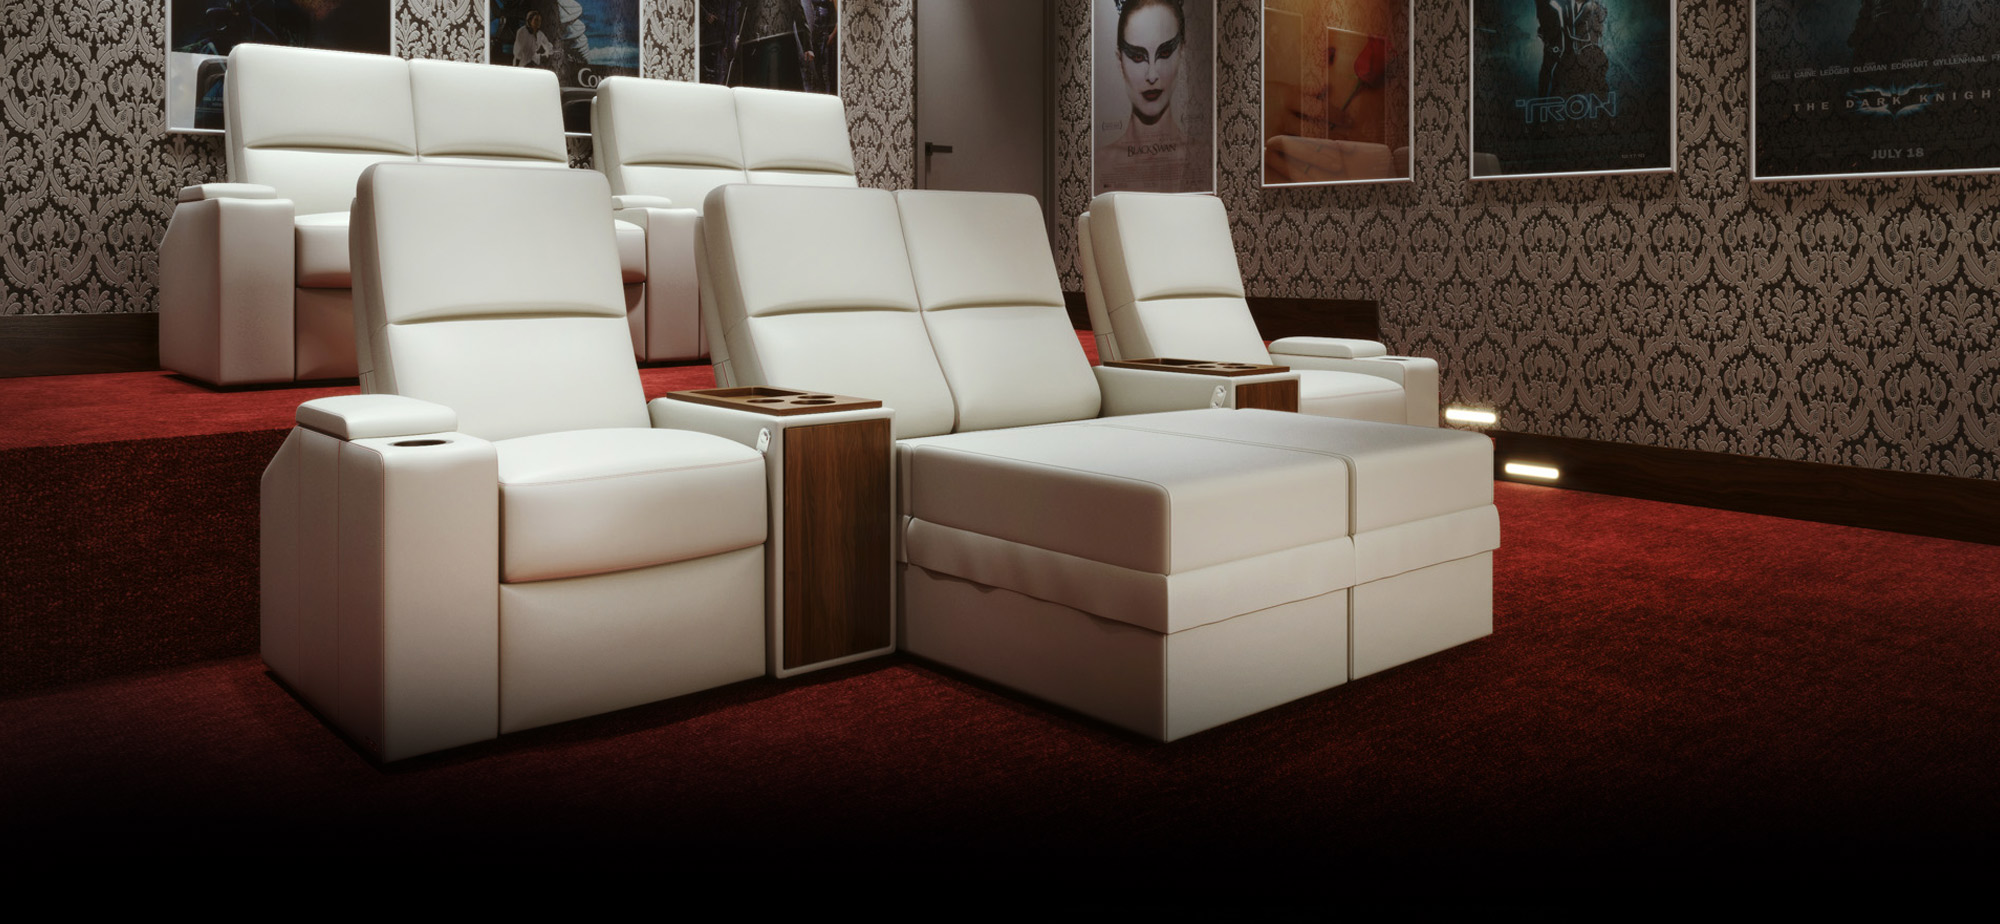 Moovia Kinosessel Preis Theater Chair Venice By Moovia Custom Home Cinema Seating